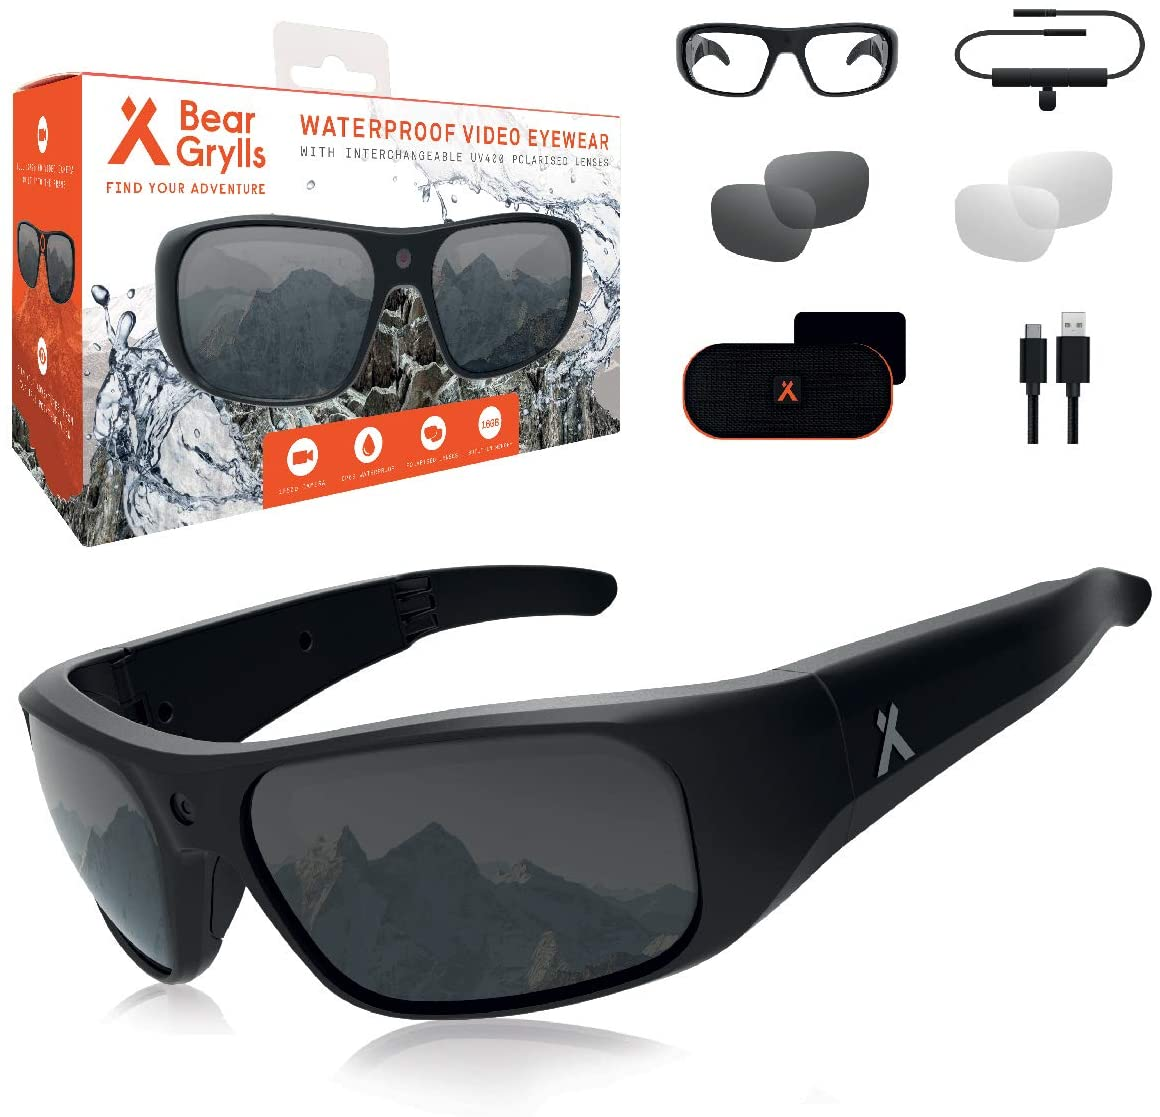 8. Bear Grylls Waterproof Action Camera Glasses